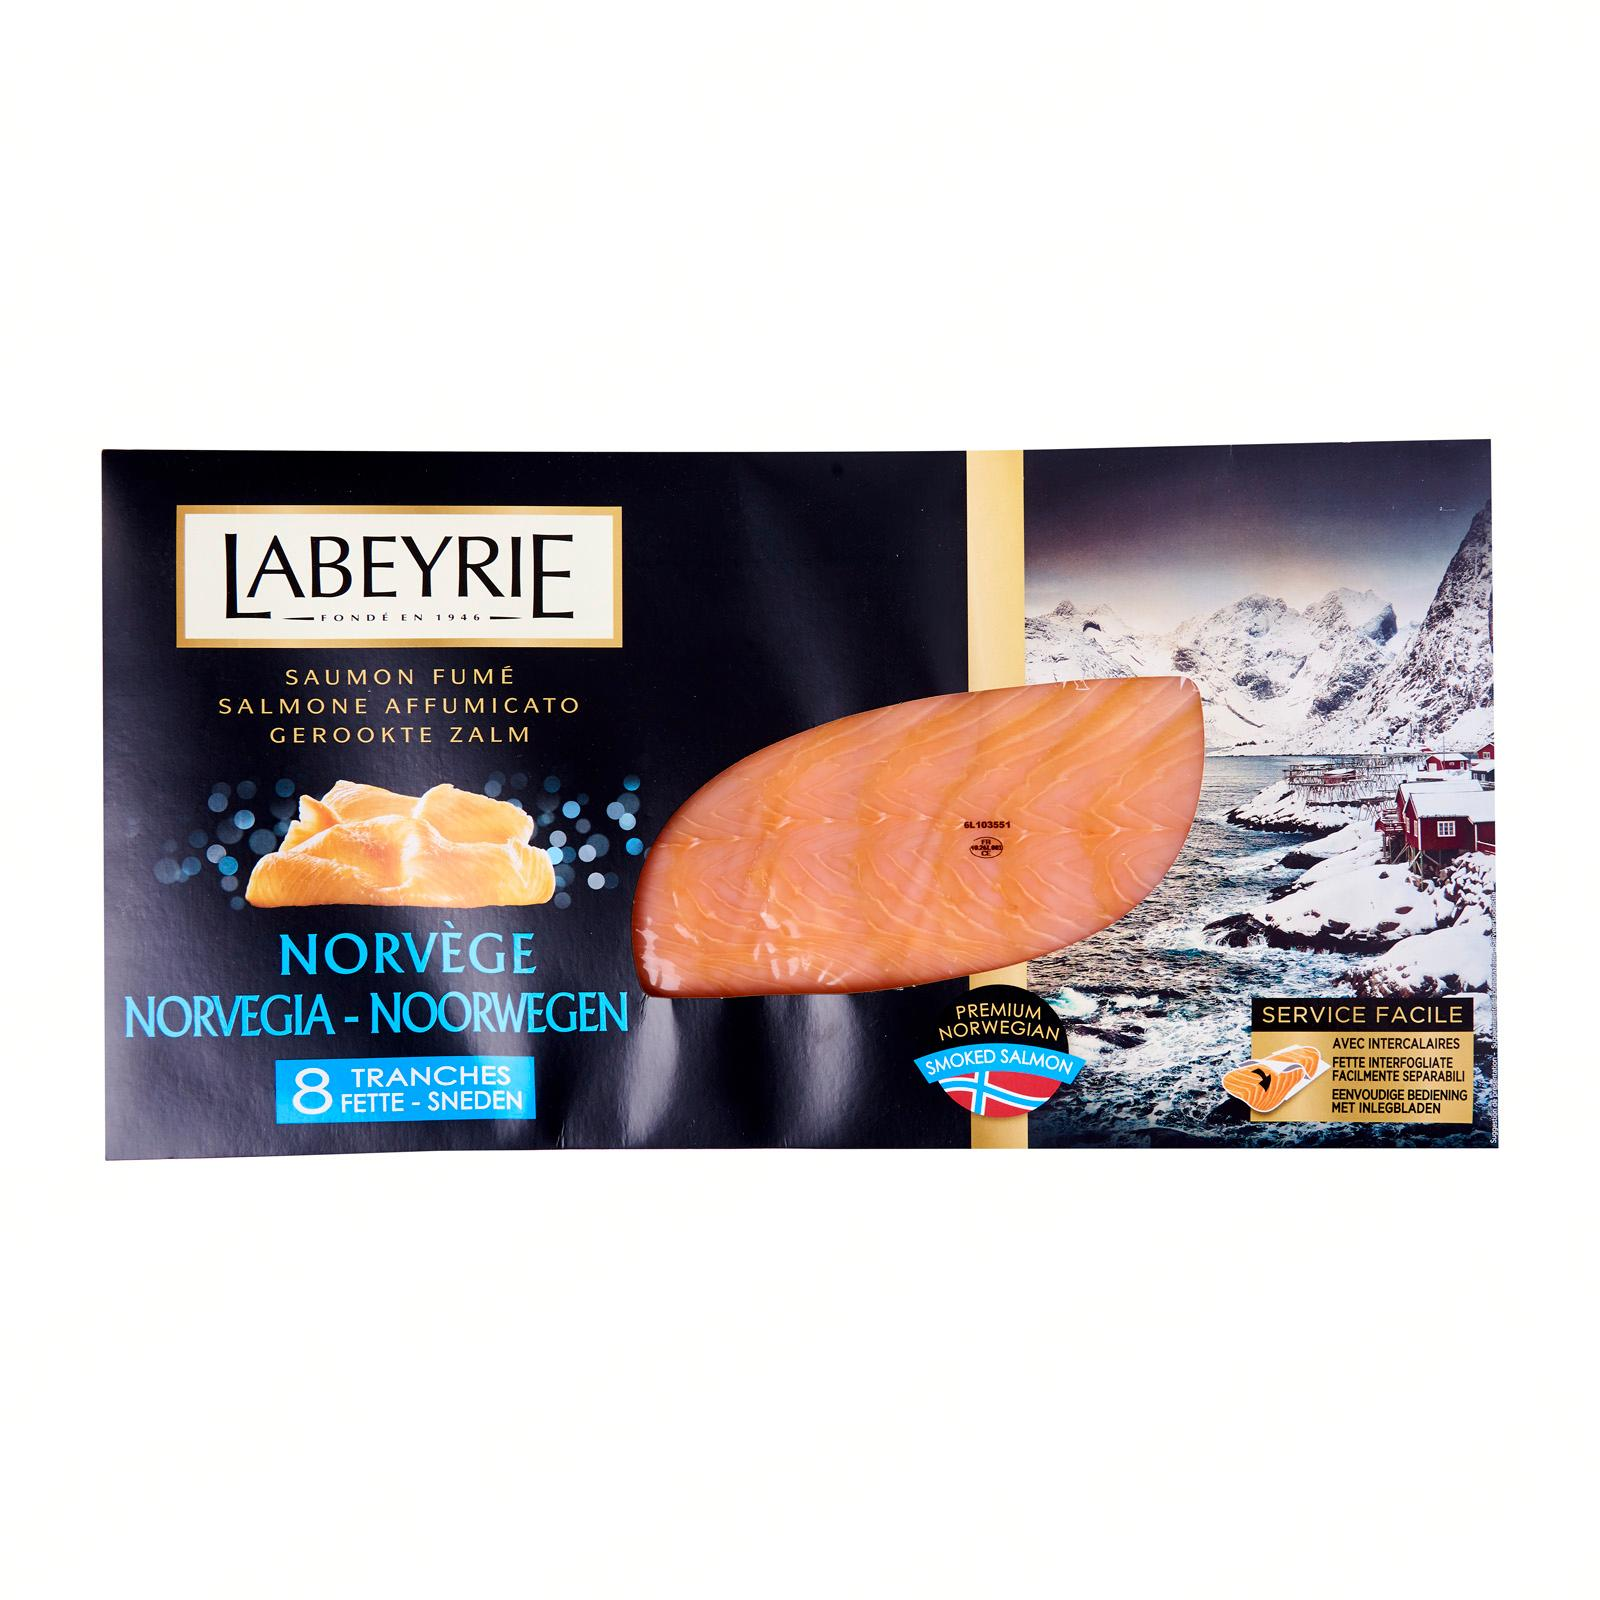 Labeyrie Norwegian Smoked Salmon - 8 Slices